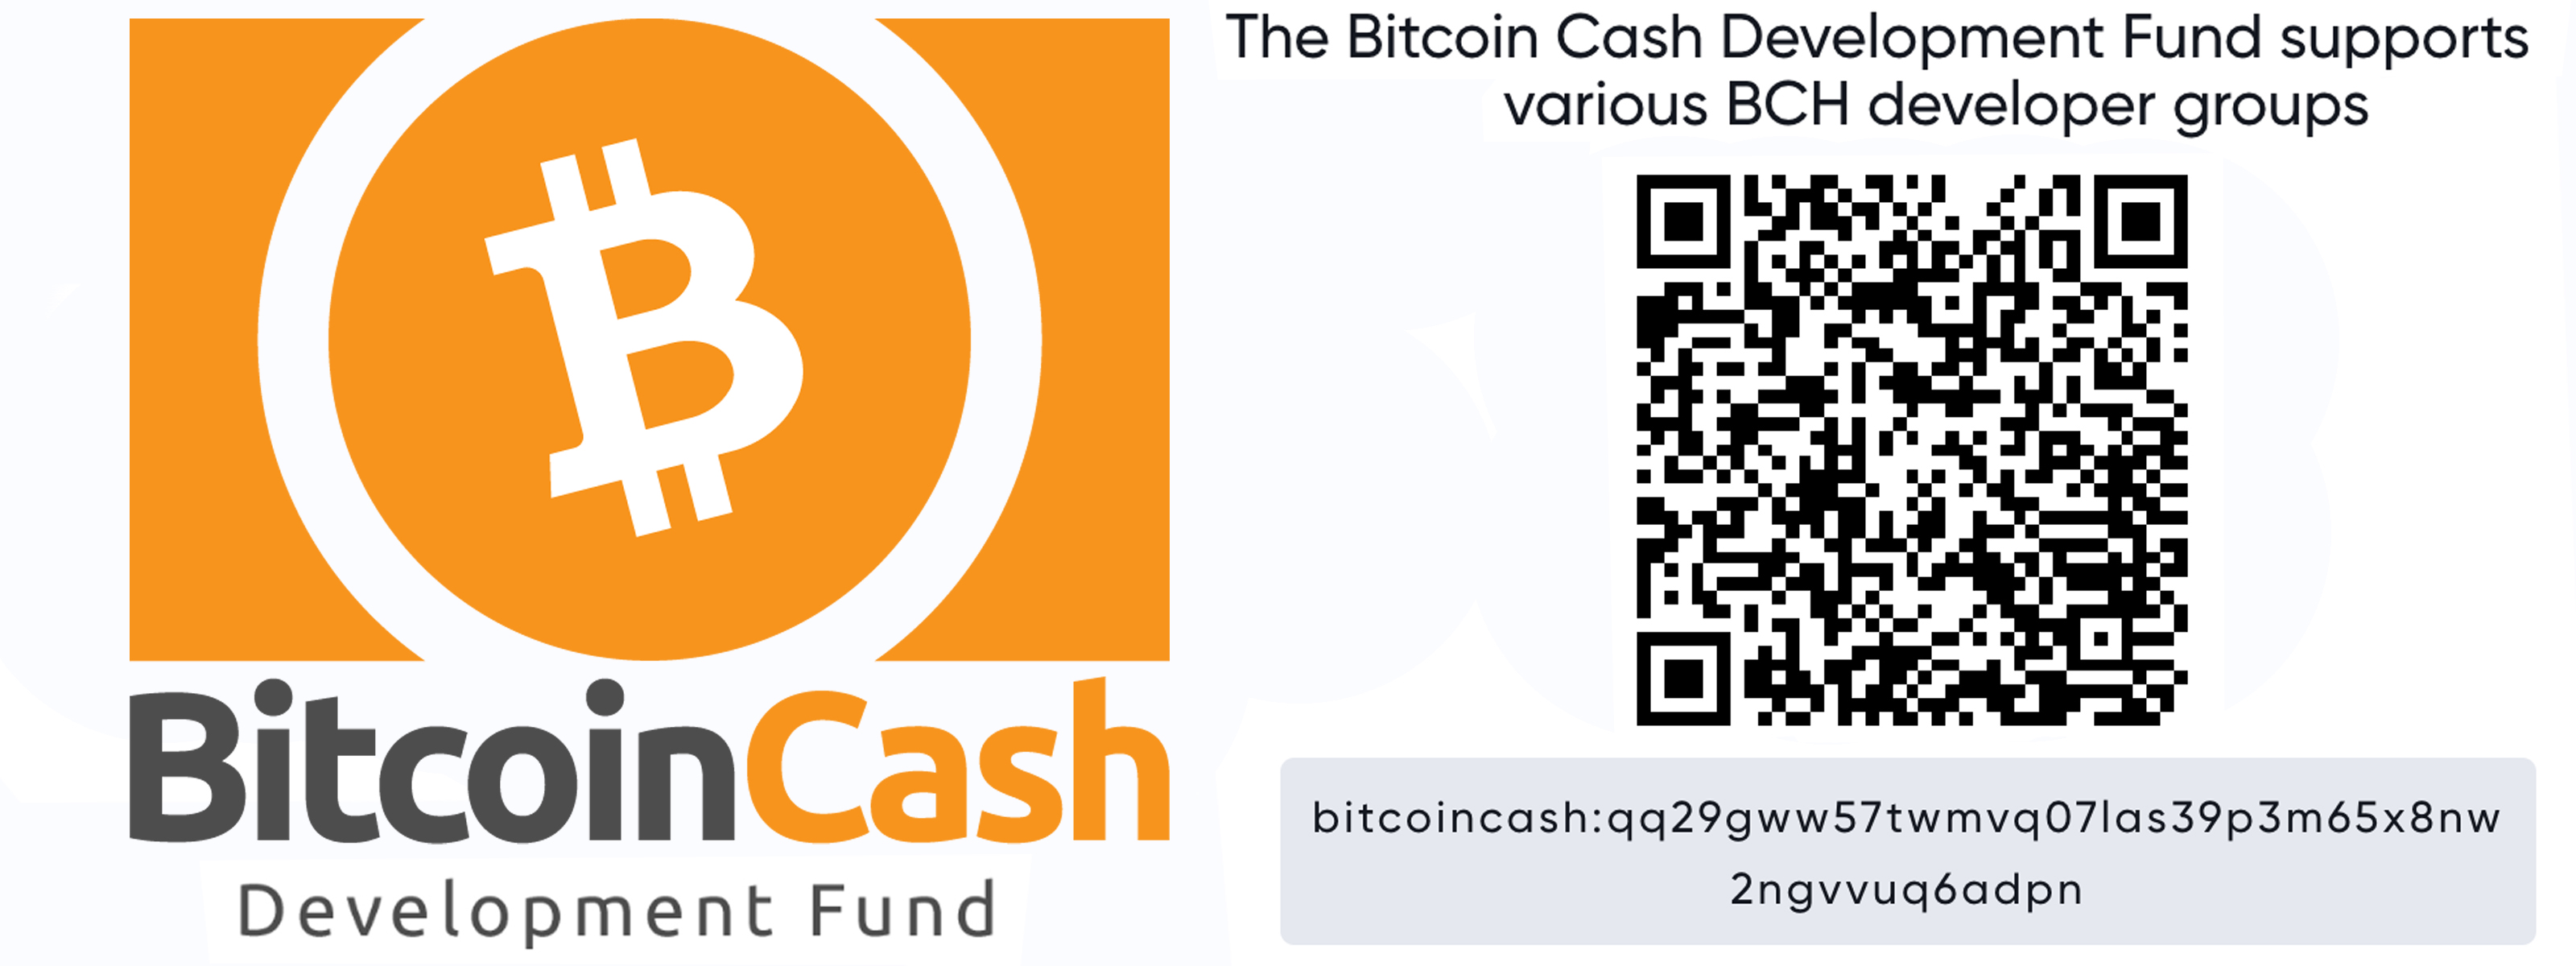 Bitcoin Cash Community on Bitkan's K-Site Raises Funds for BCH Development